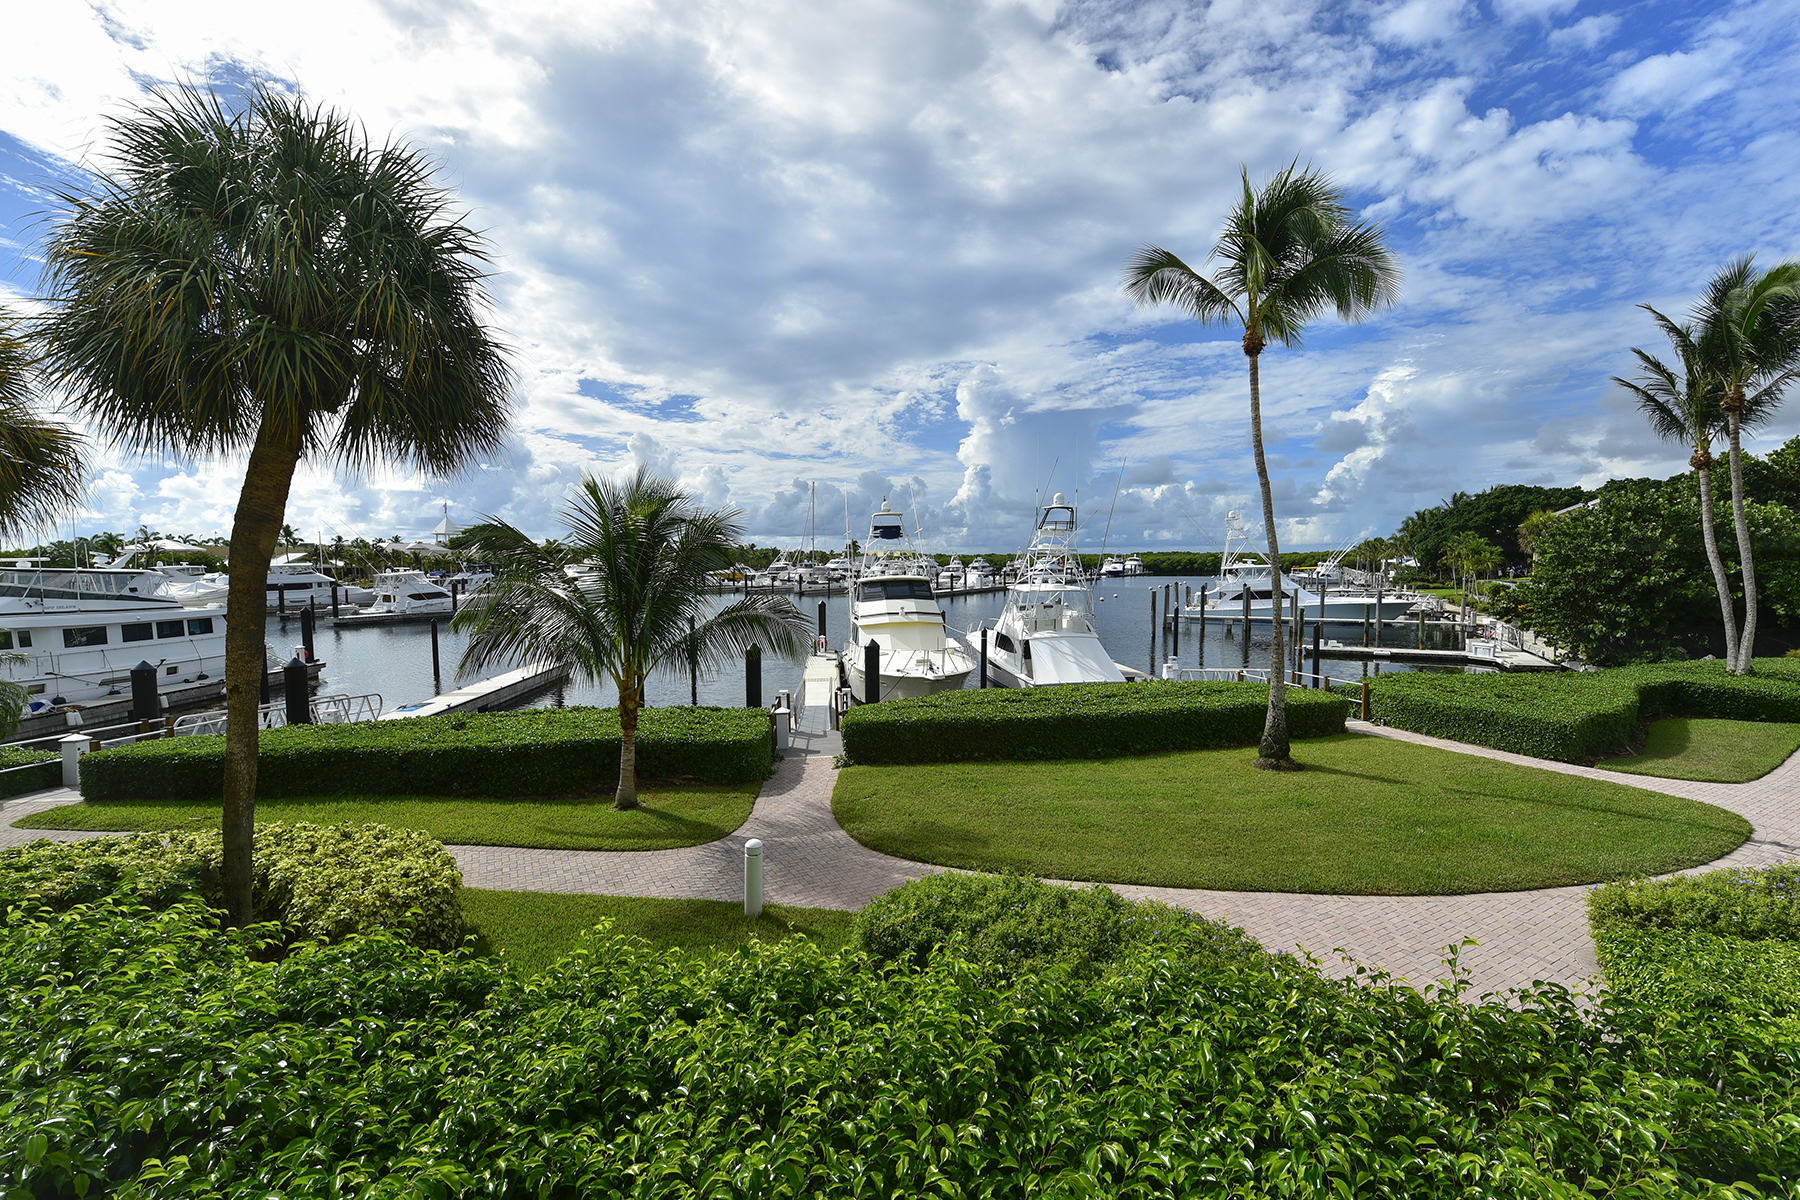 Appartement voor Verkoop een t Waterfront Condominium at Ocean Reef 18 Marina Drive, Unit A Key Largo, Florida 33037 Verenigde Staten